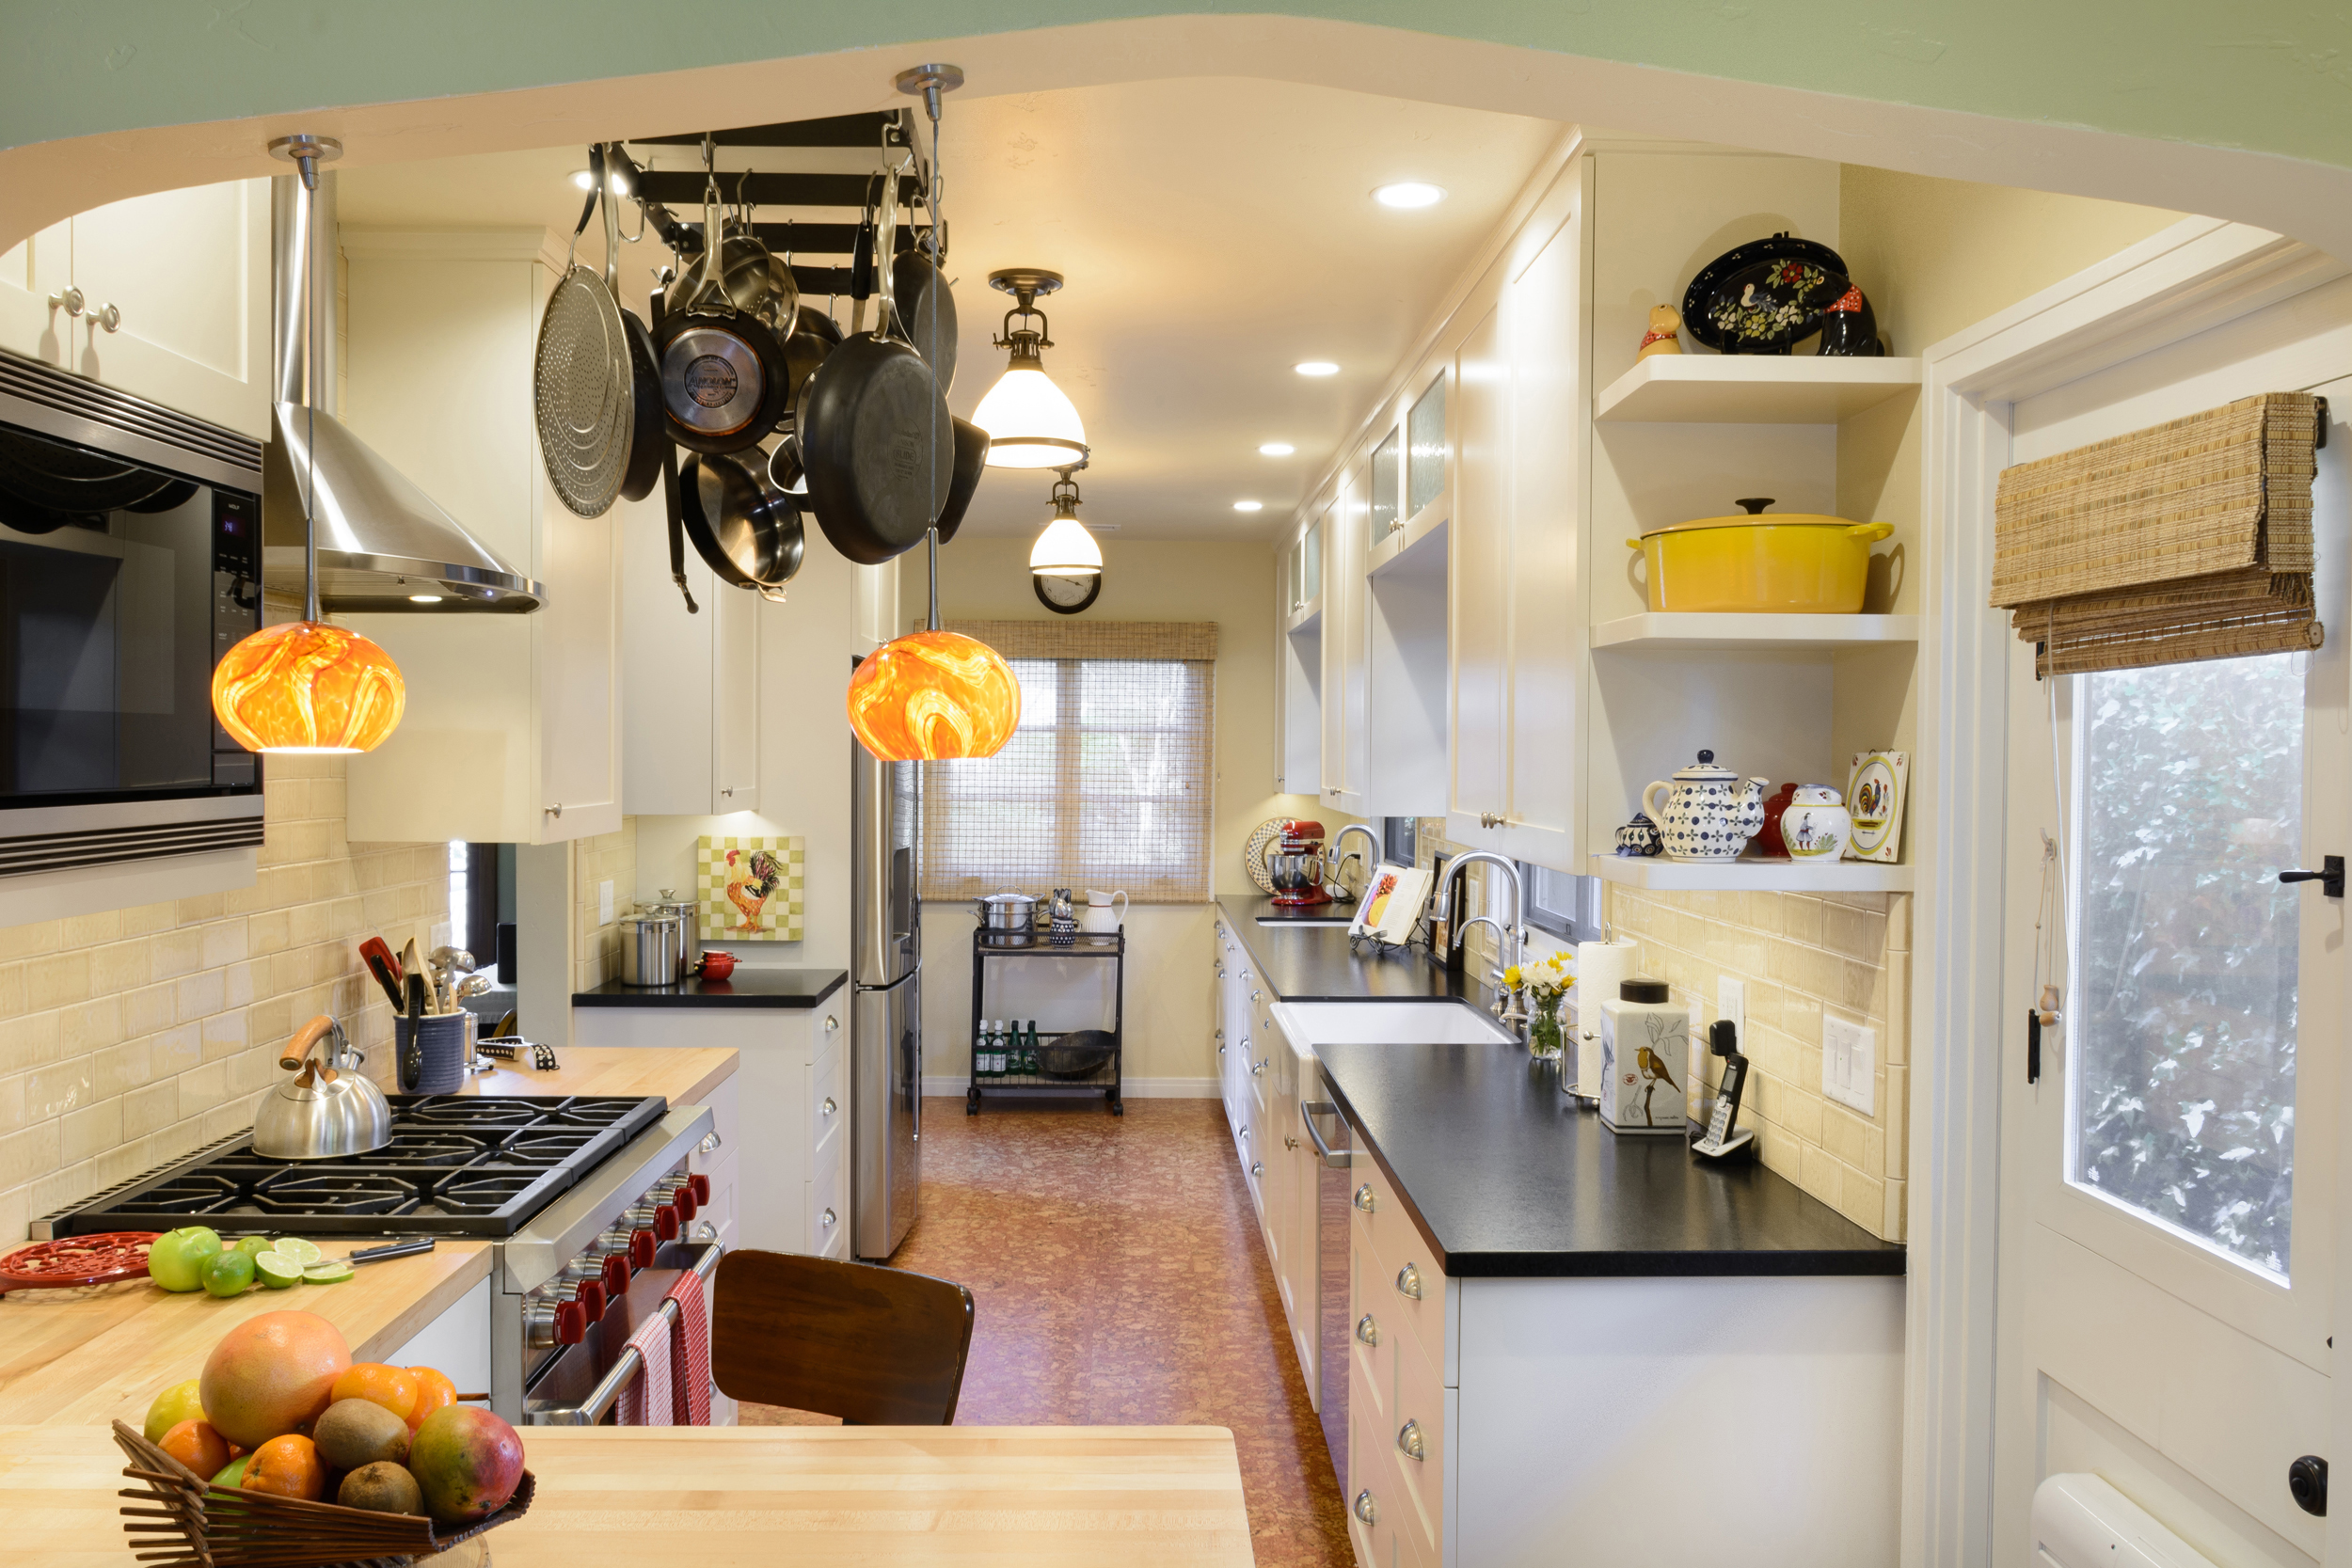 Colorful and warm old world charm galley kitchen with white Shaker cabinets, cork flooring, wood and black leathered stone countertops, tile backsplash and peninsula with bar seating